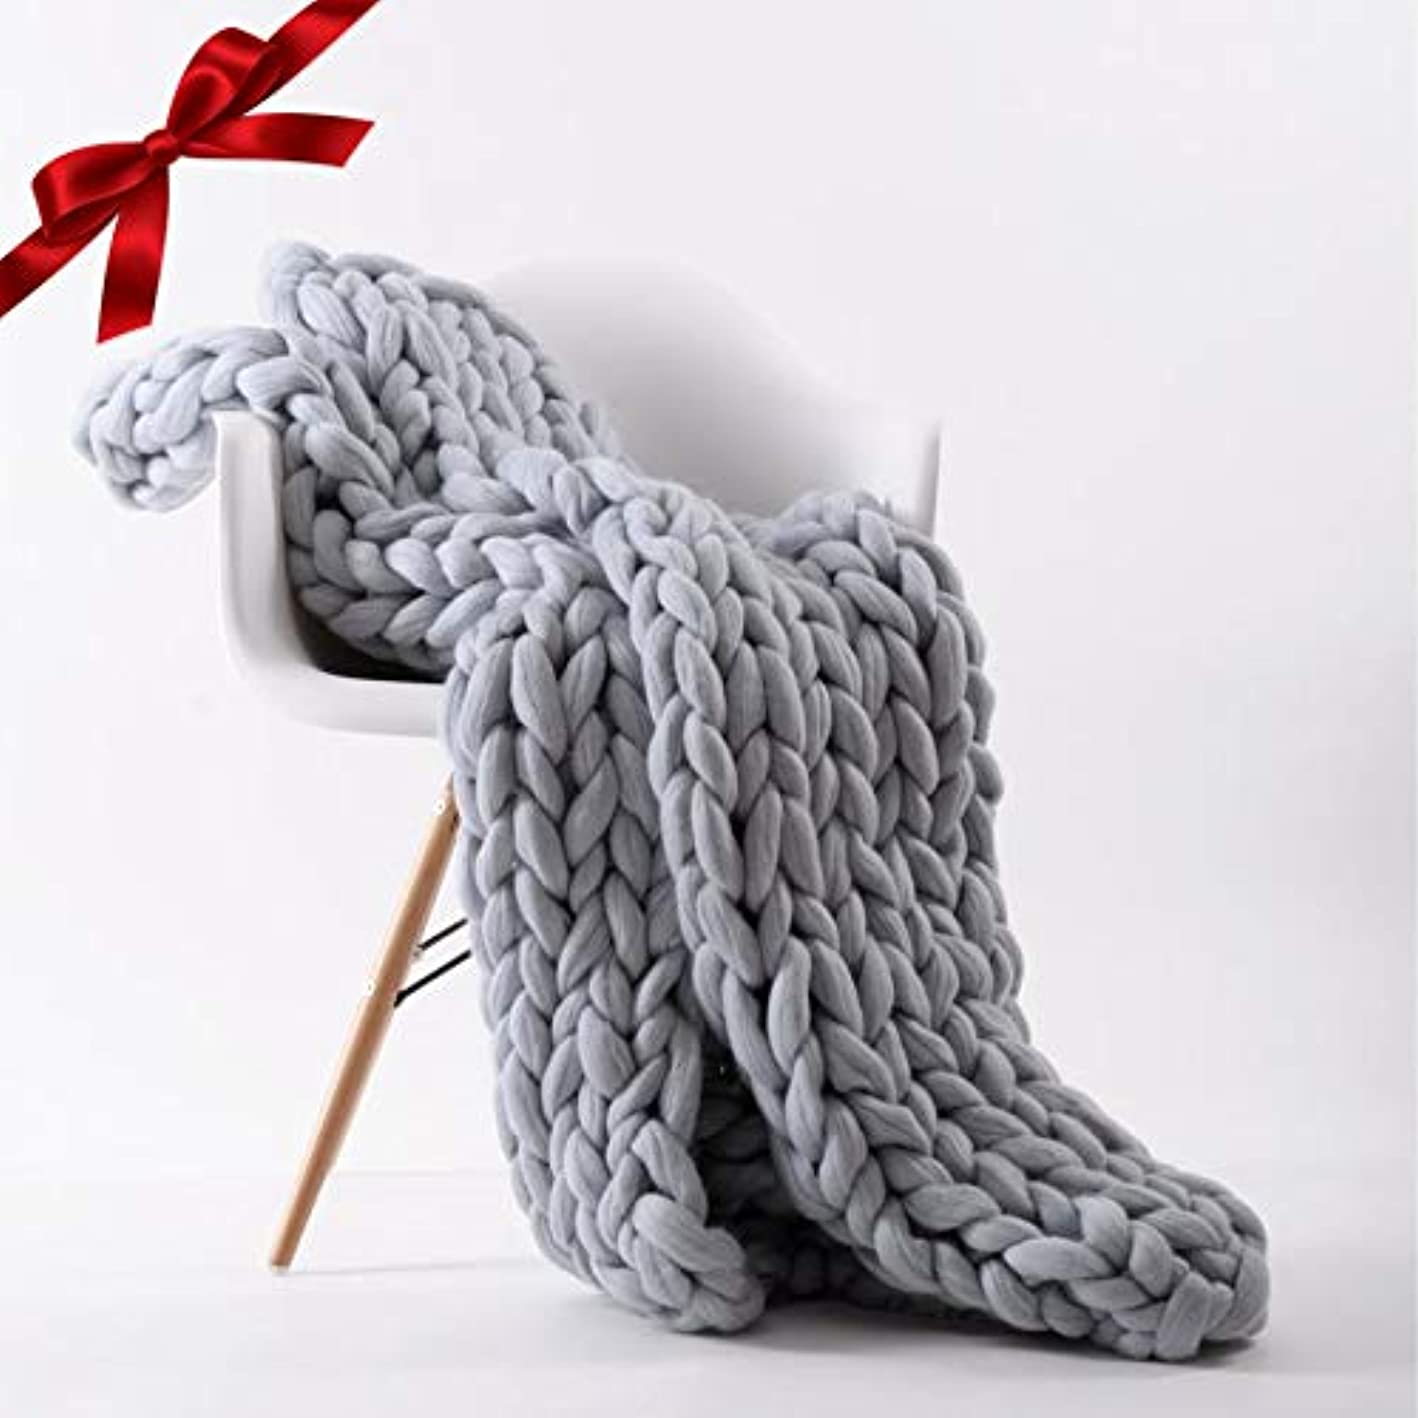 Chunky Knit Blanket Throw | Hand Made Knitted with Heavy Thick Vegan Yarn | FREE Storage Bag | Accent Home Decor Gift for Farmhouse Couch Bench Bed ?? (Standard Throw 50